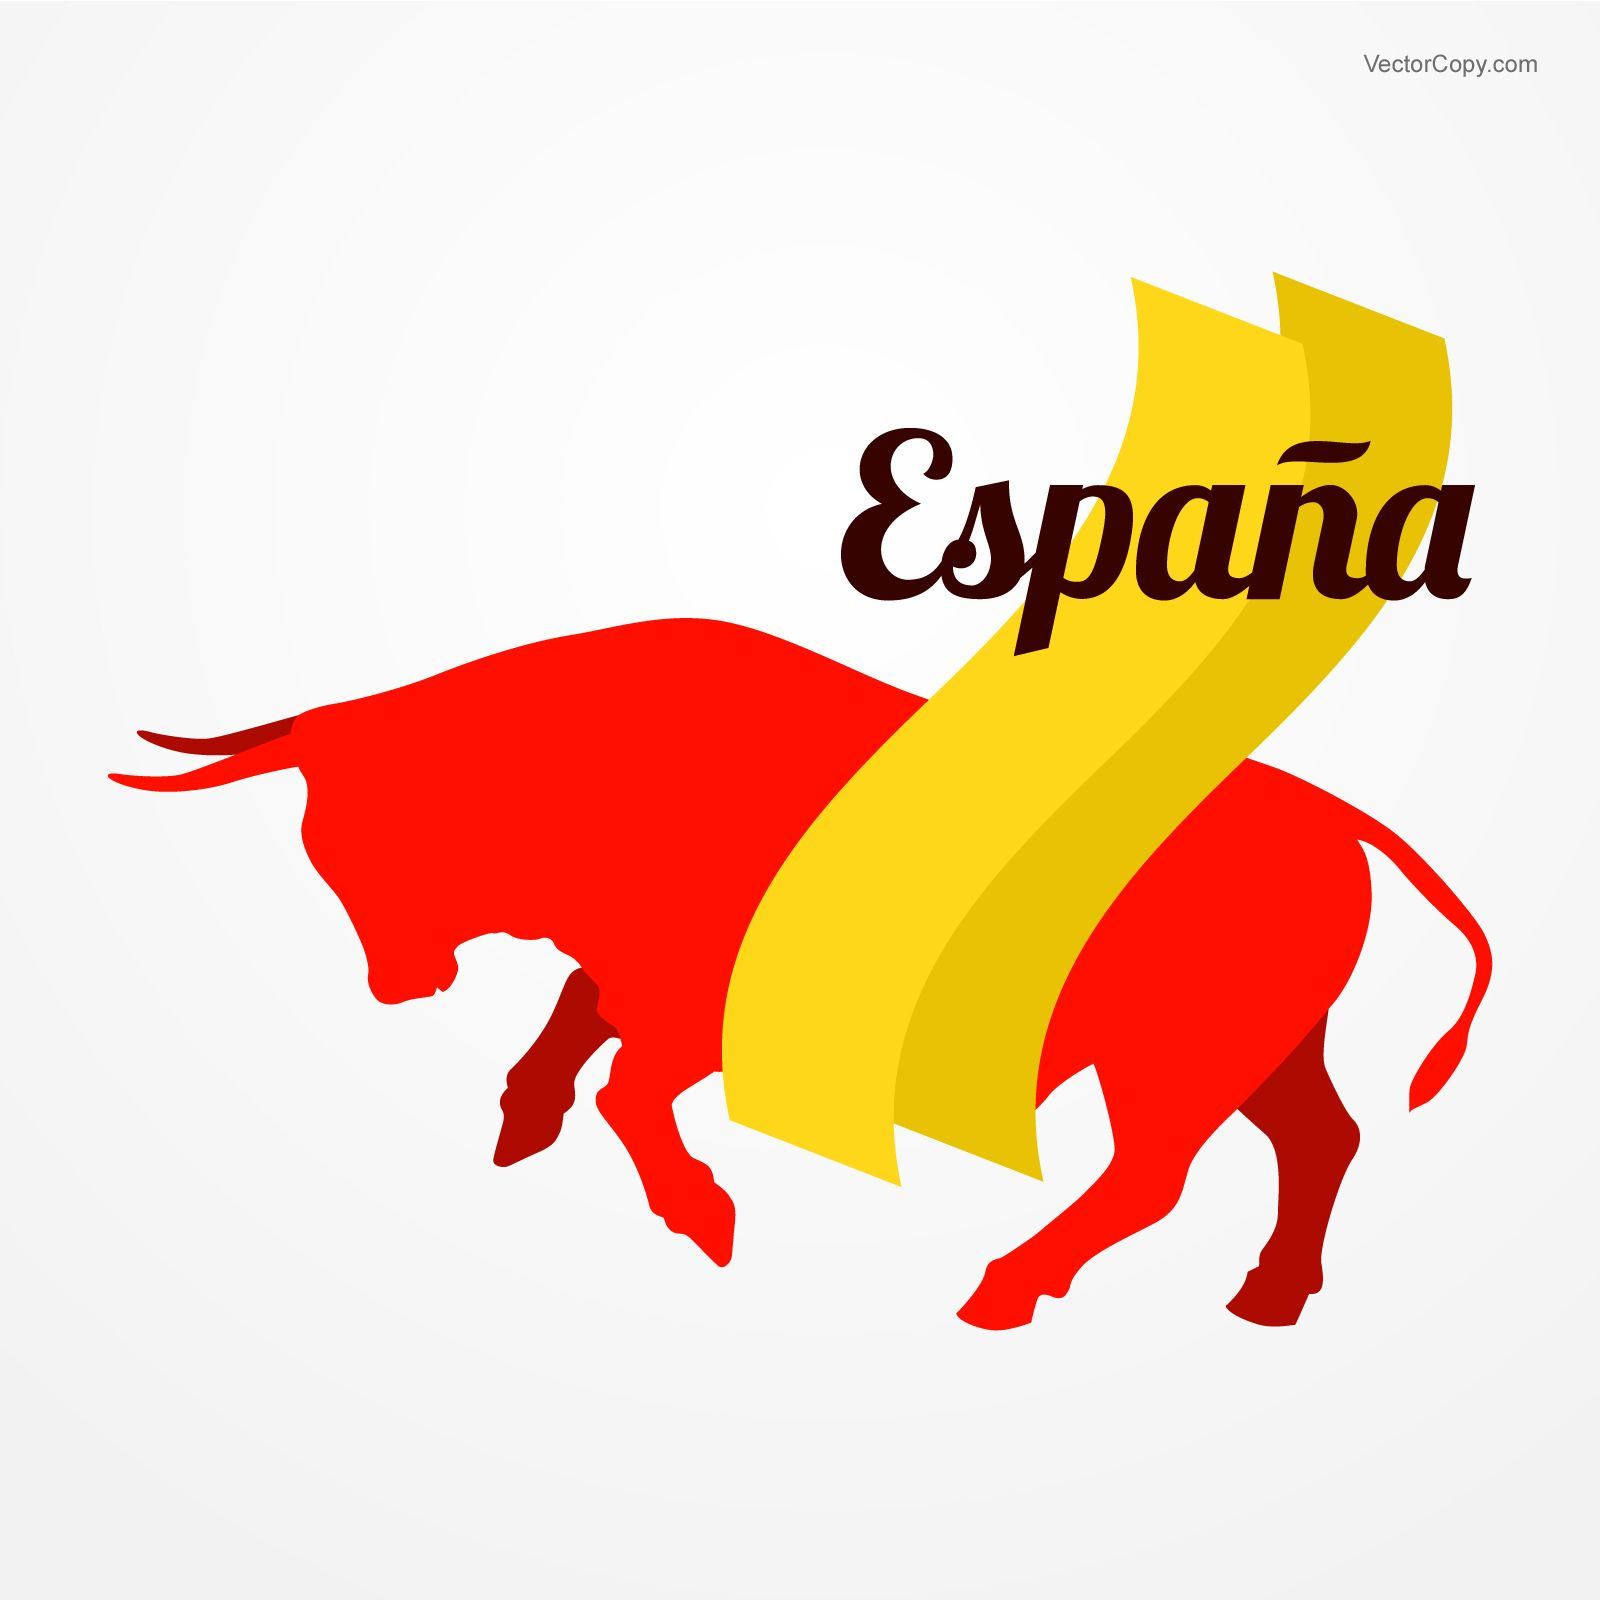 Spain logo, download free vector images.